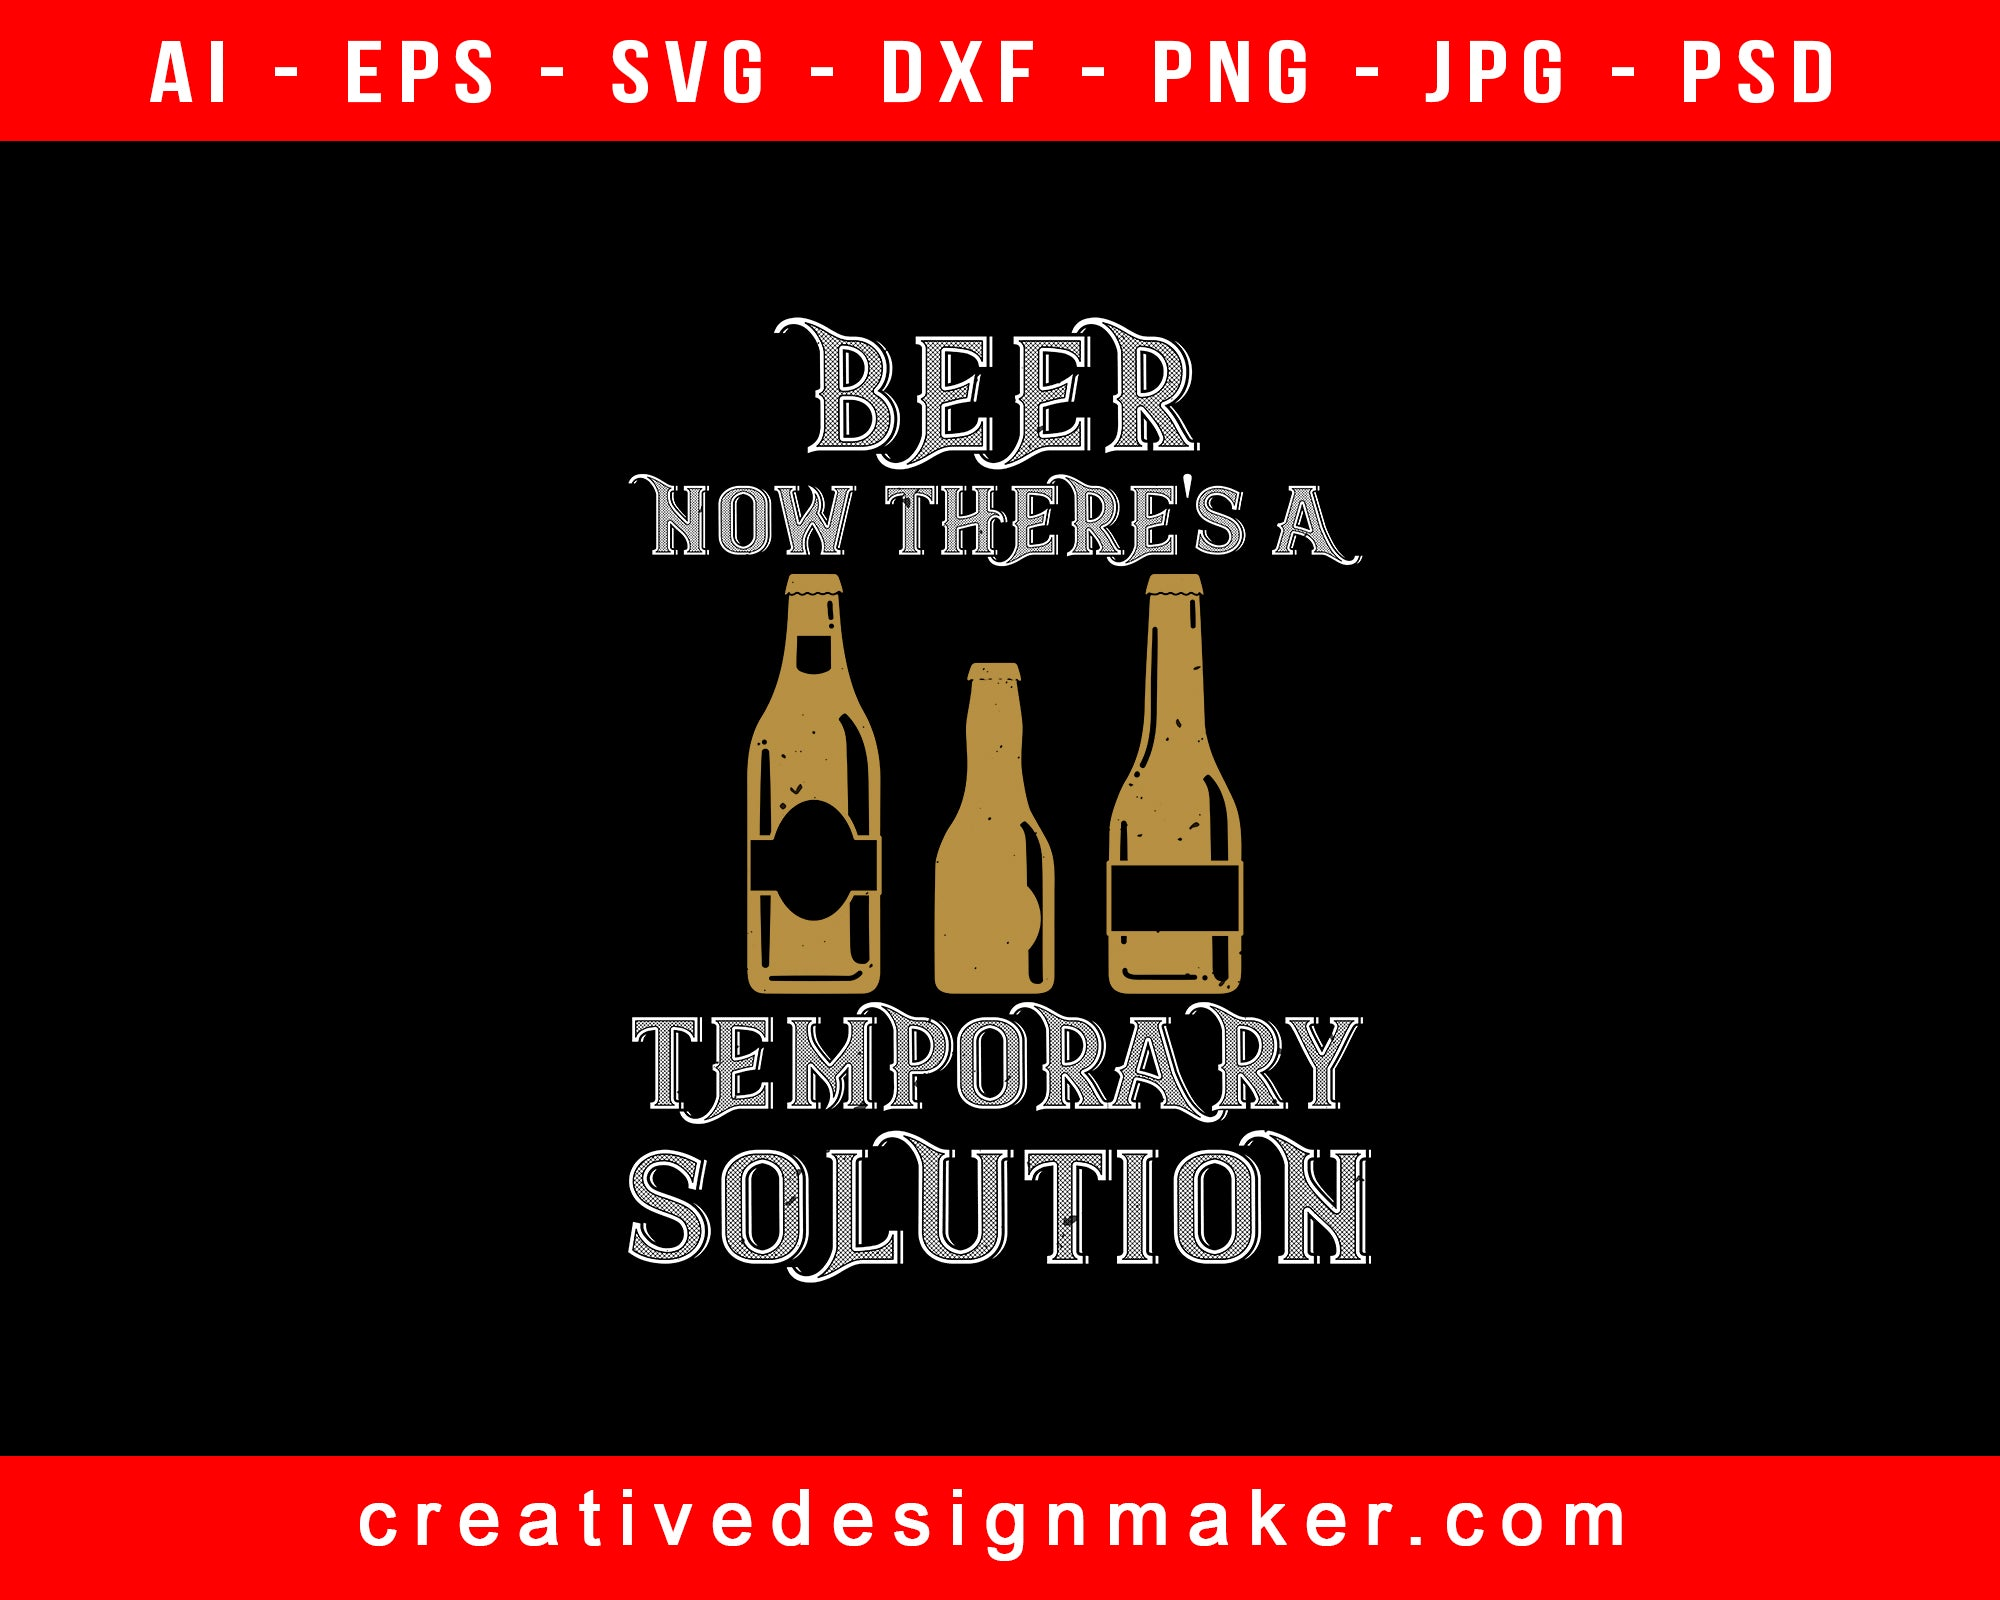 Beer. Now There's A Temporary Solution Print Ready Editable T-Shirt SVG Design!